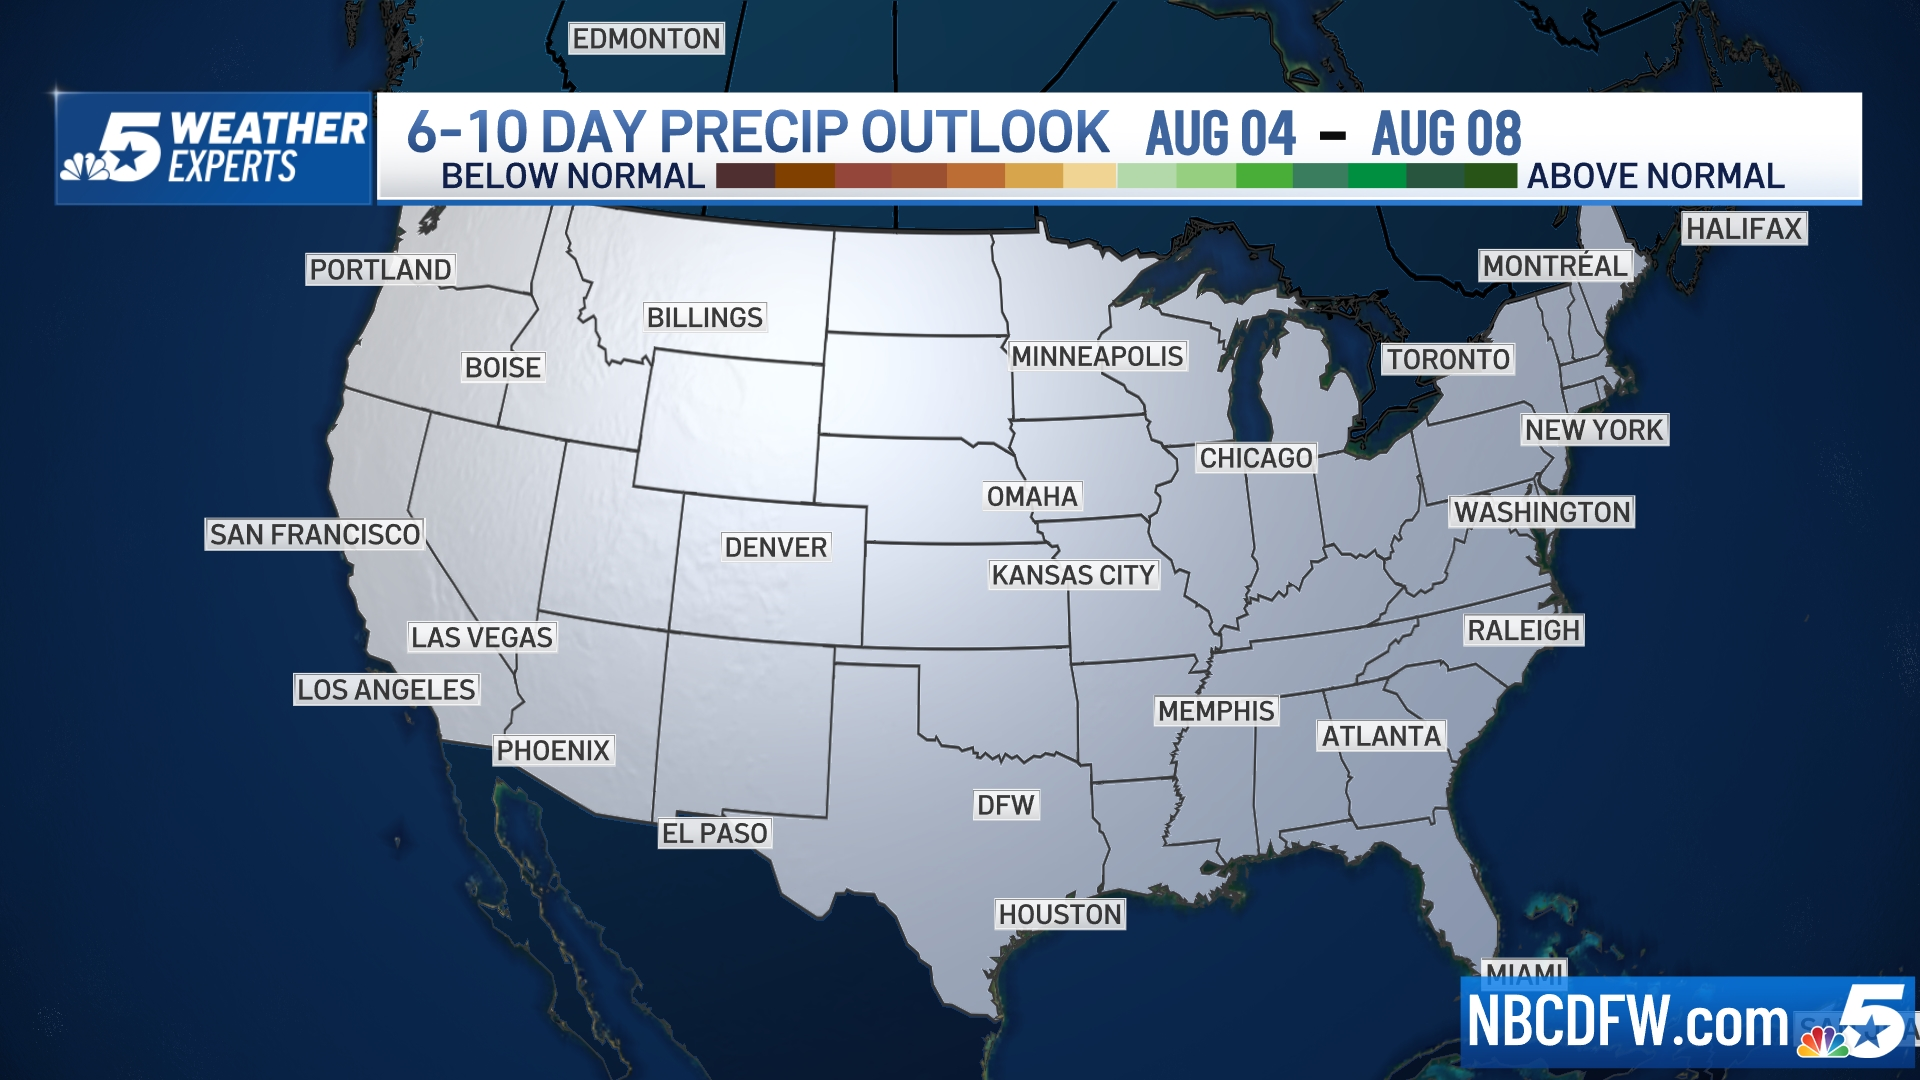 6 to 10 Day Outlook - Precipitation